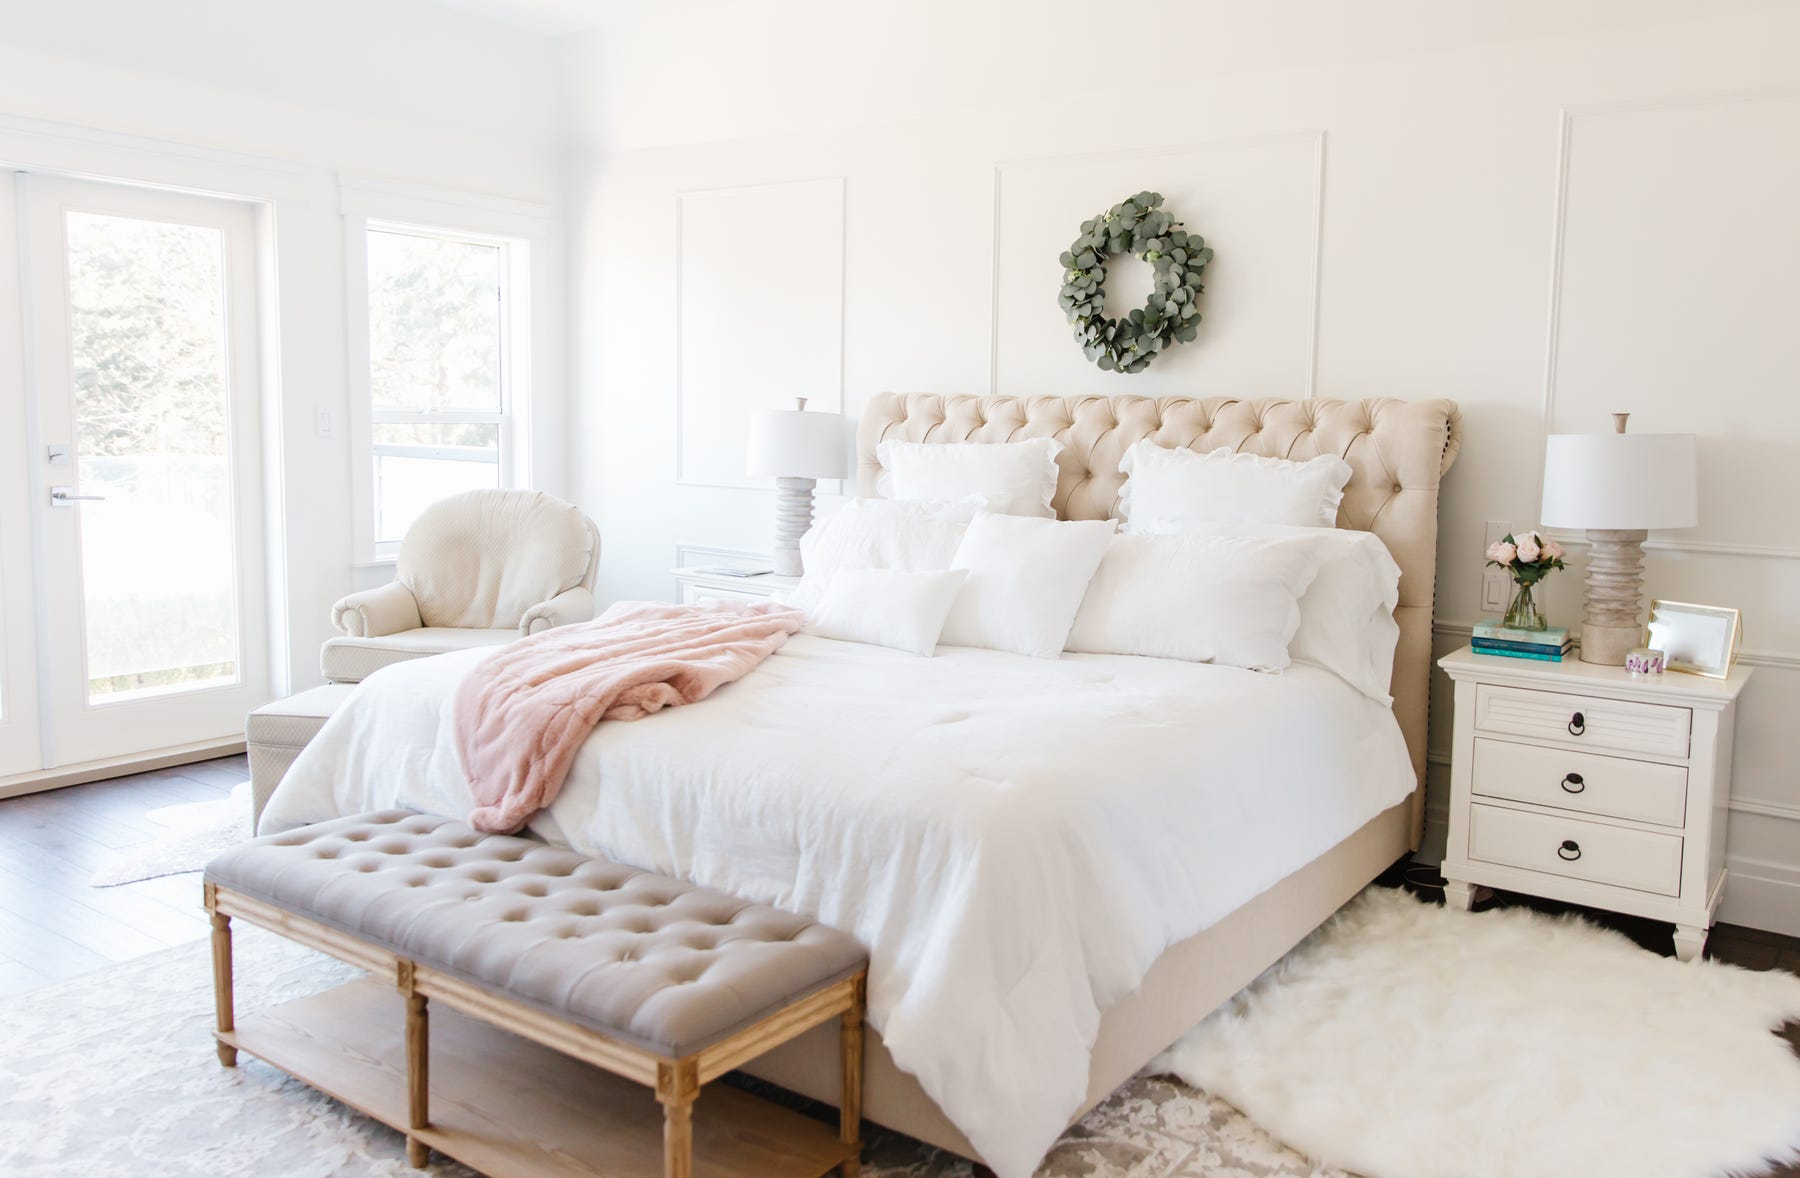 Interior Designers Share 10 Ways to Make Your Bedroom Look Better for Free